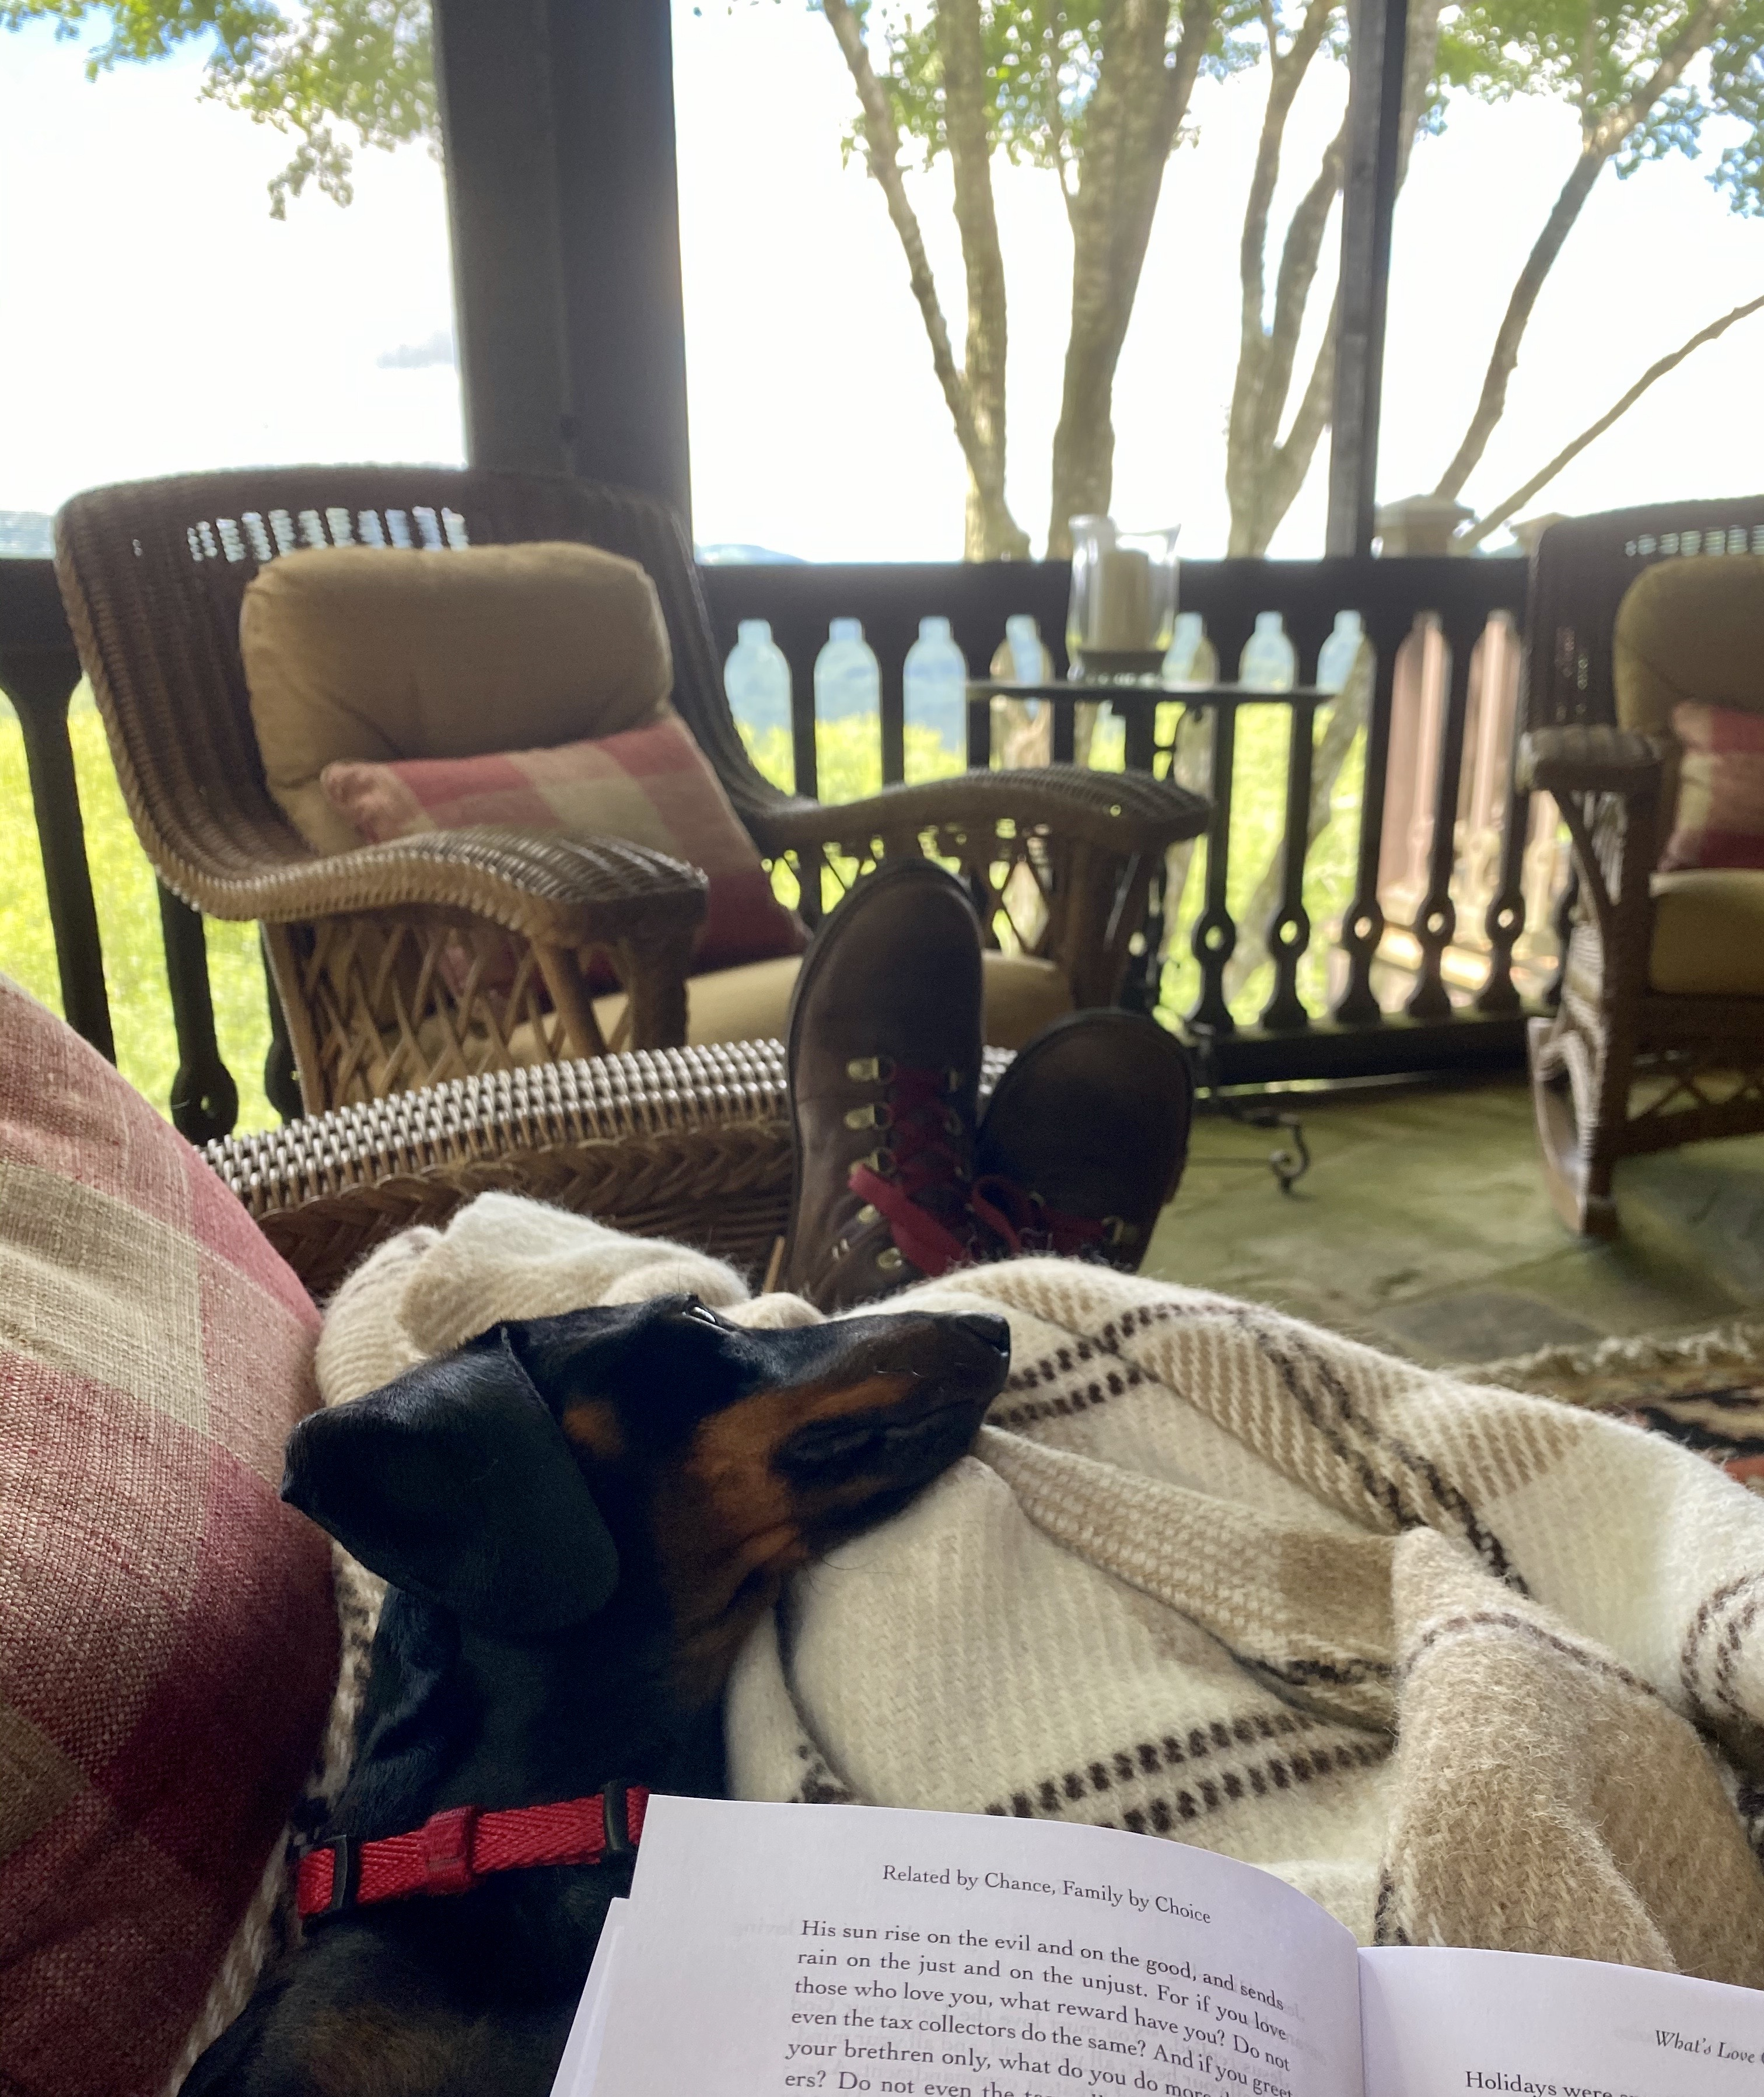 Spending a lazy day on the porch reading and researching for our upcoming interview.